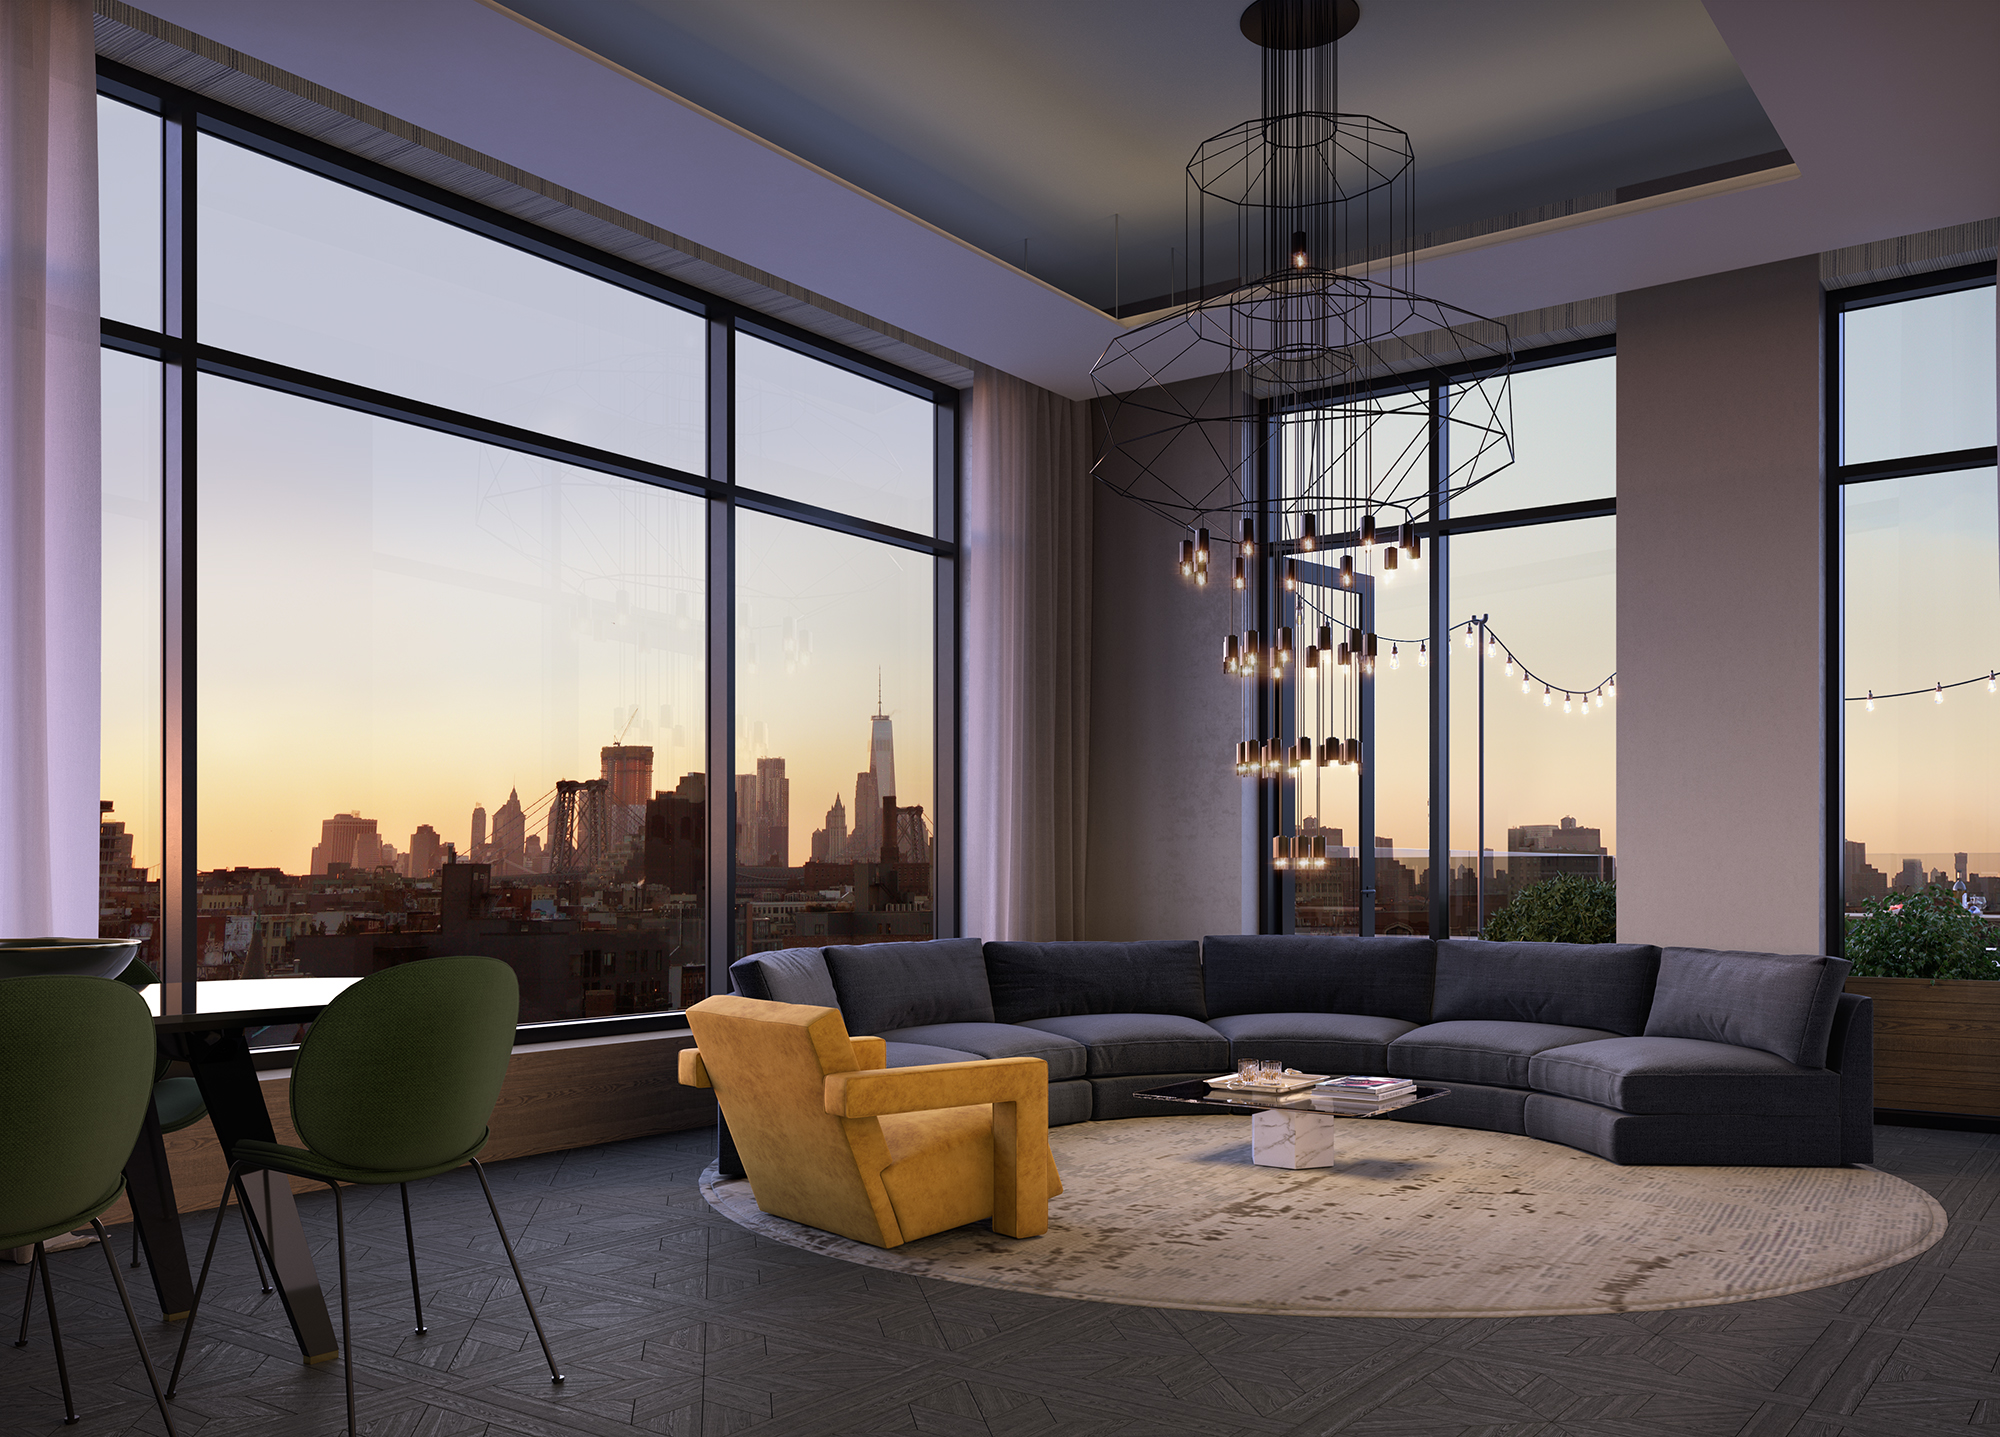 308 N 7th Street Launches Sales In Williamsburg